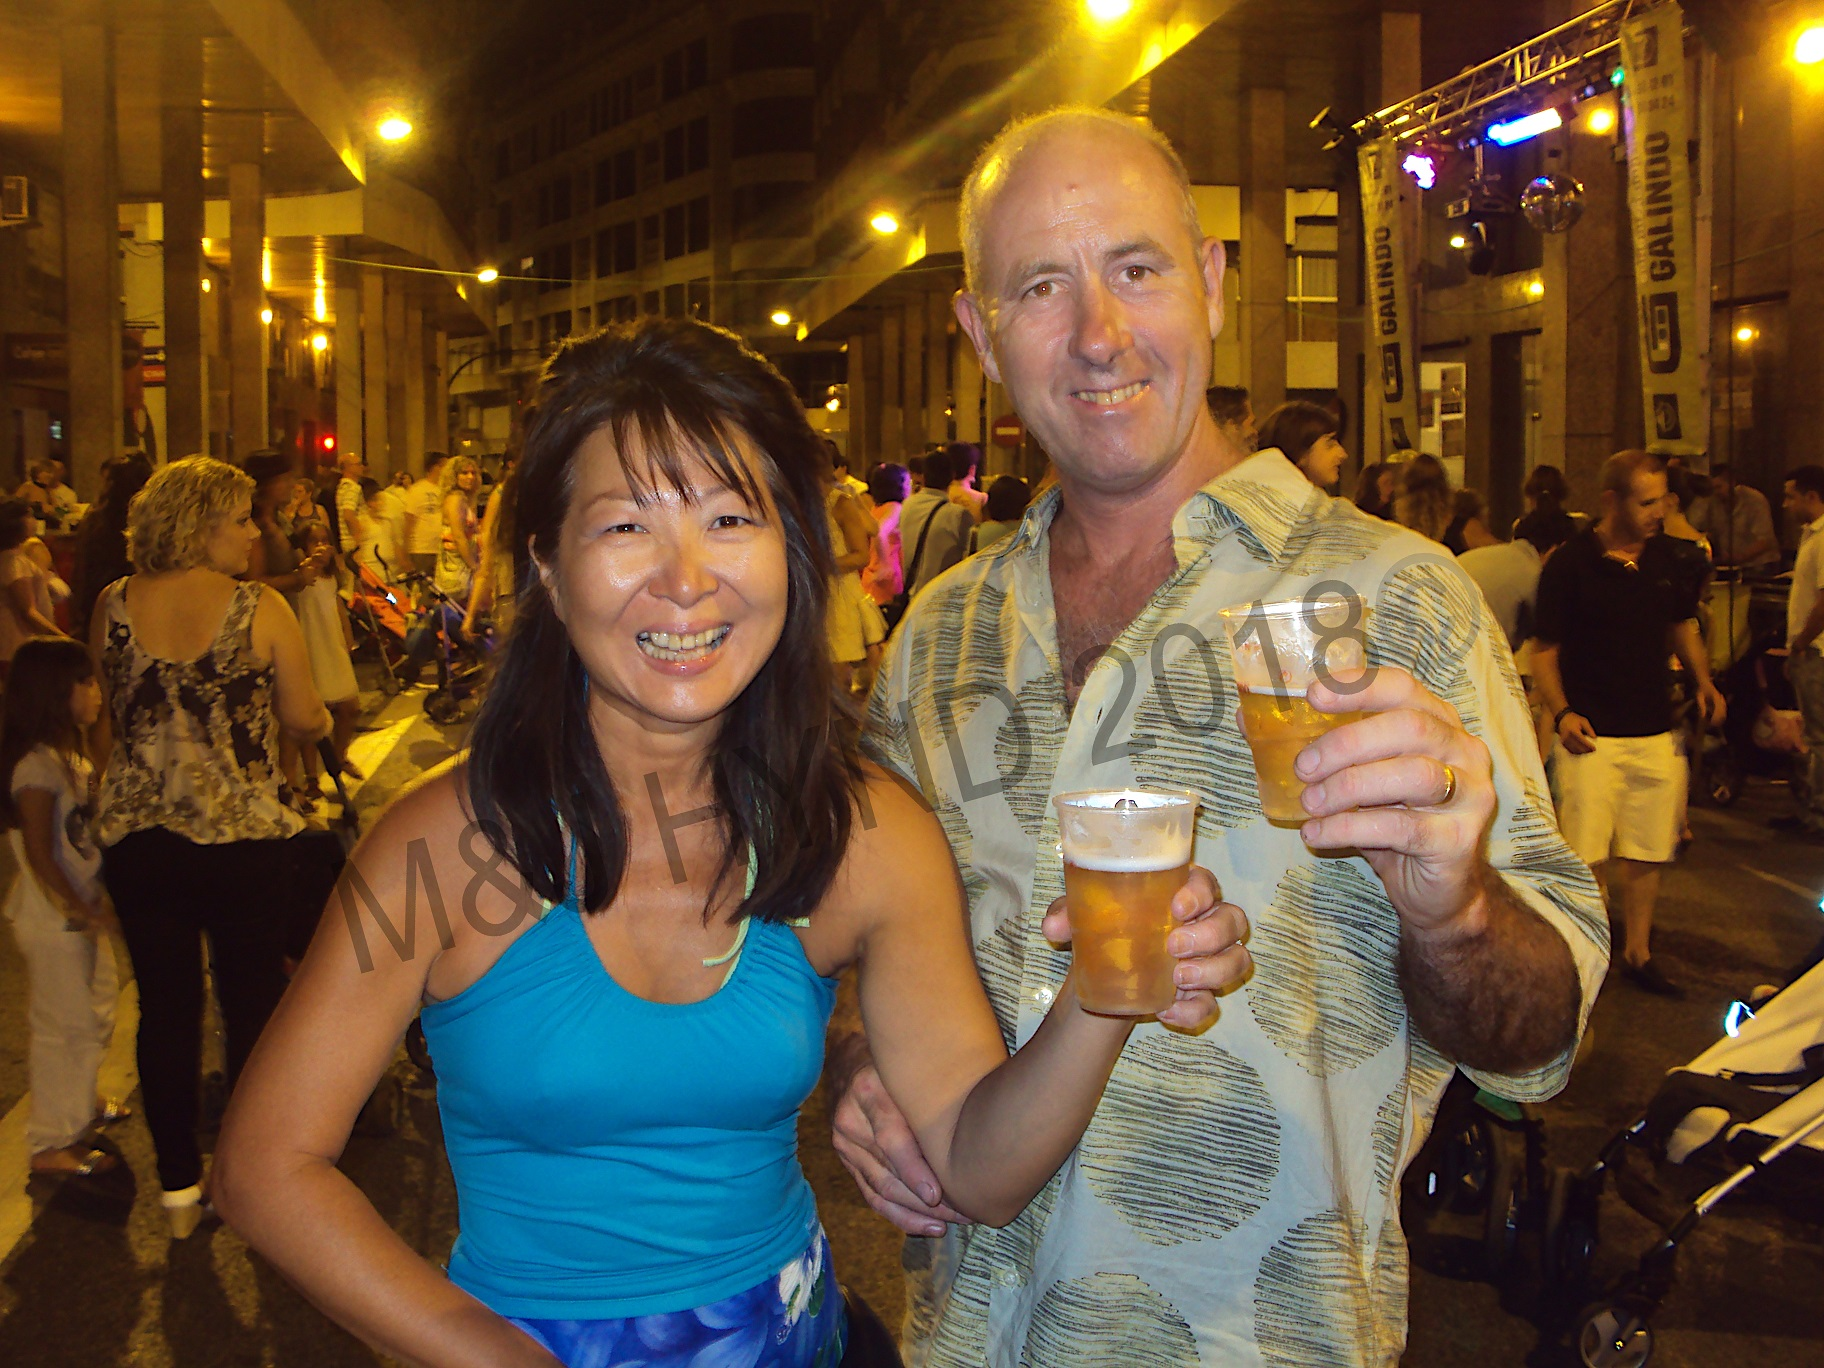 3am, +34C heat, but the beer is cold